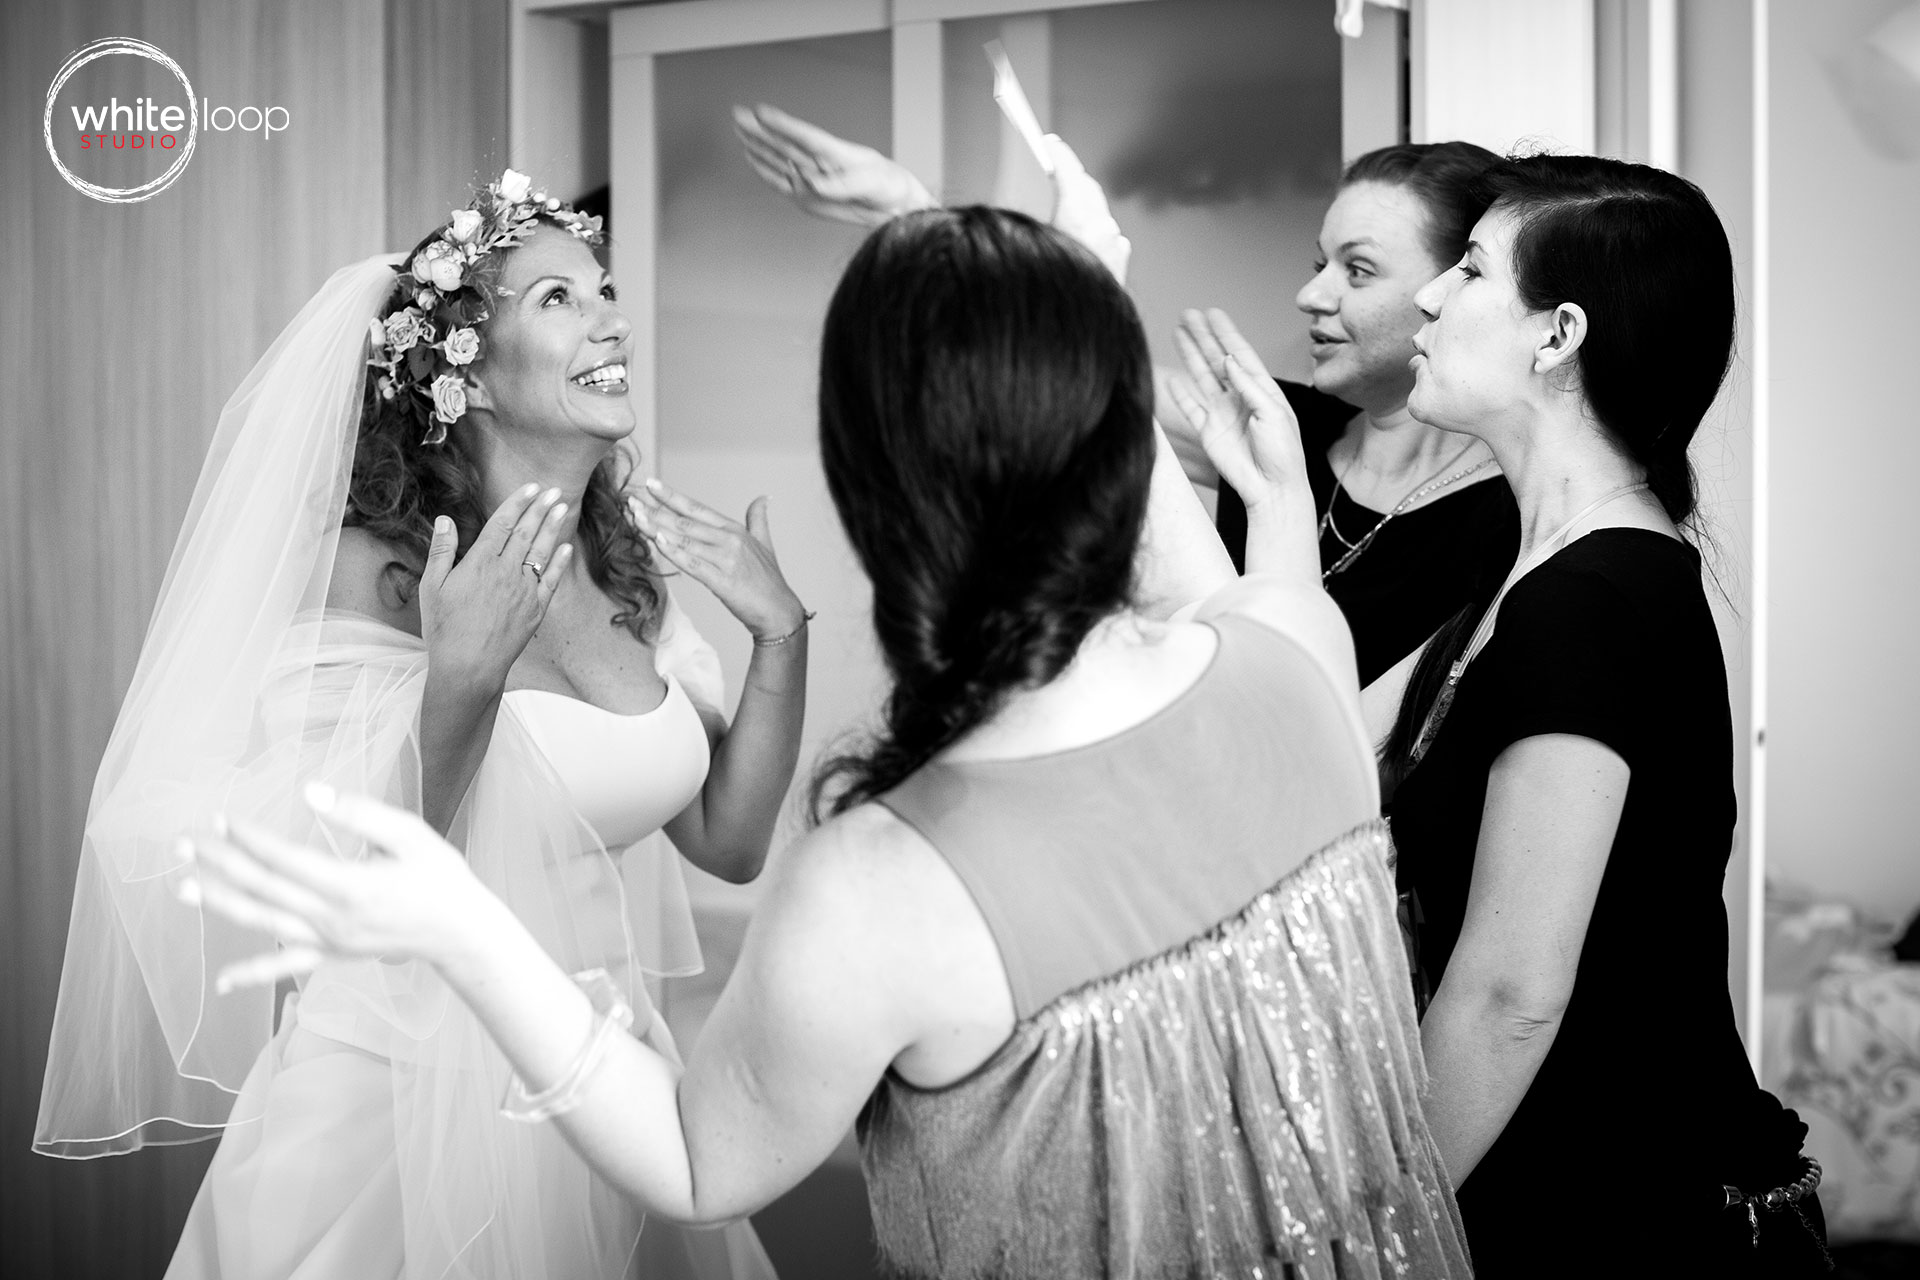 The bride ready and her close friends try to avoid cry of her big emotion.